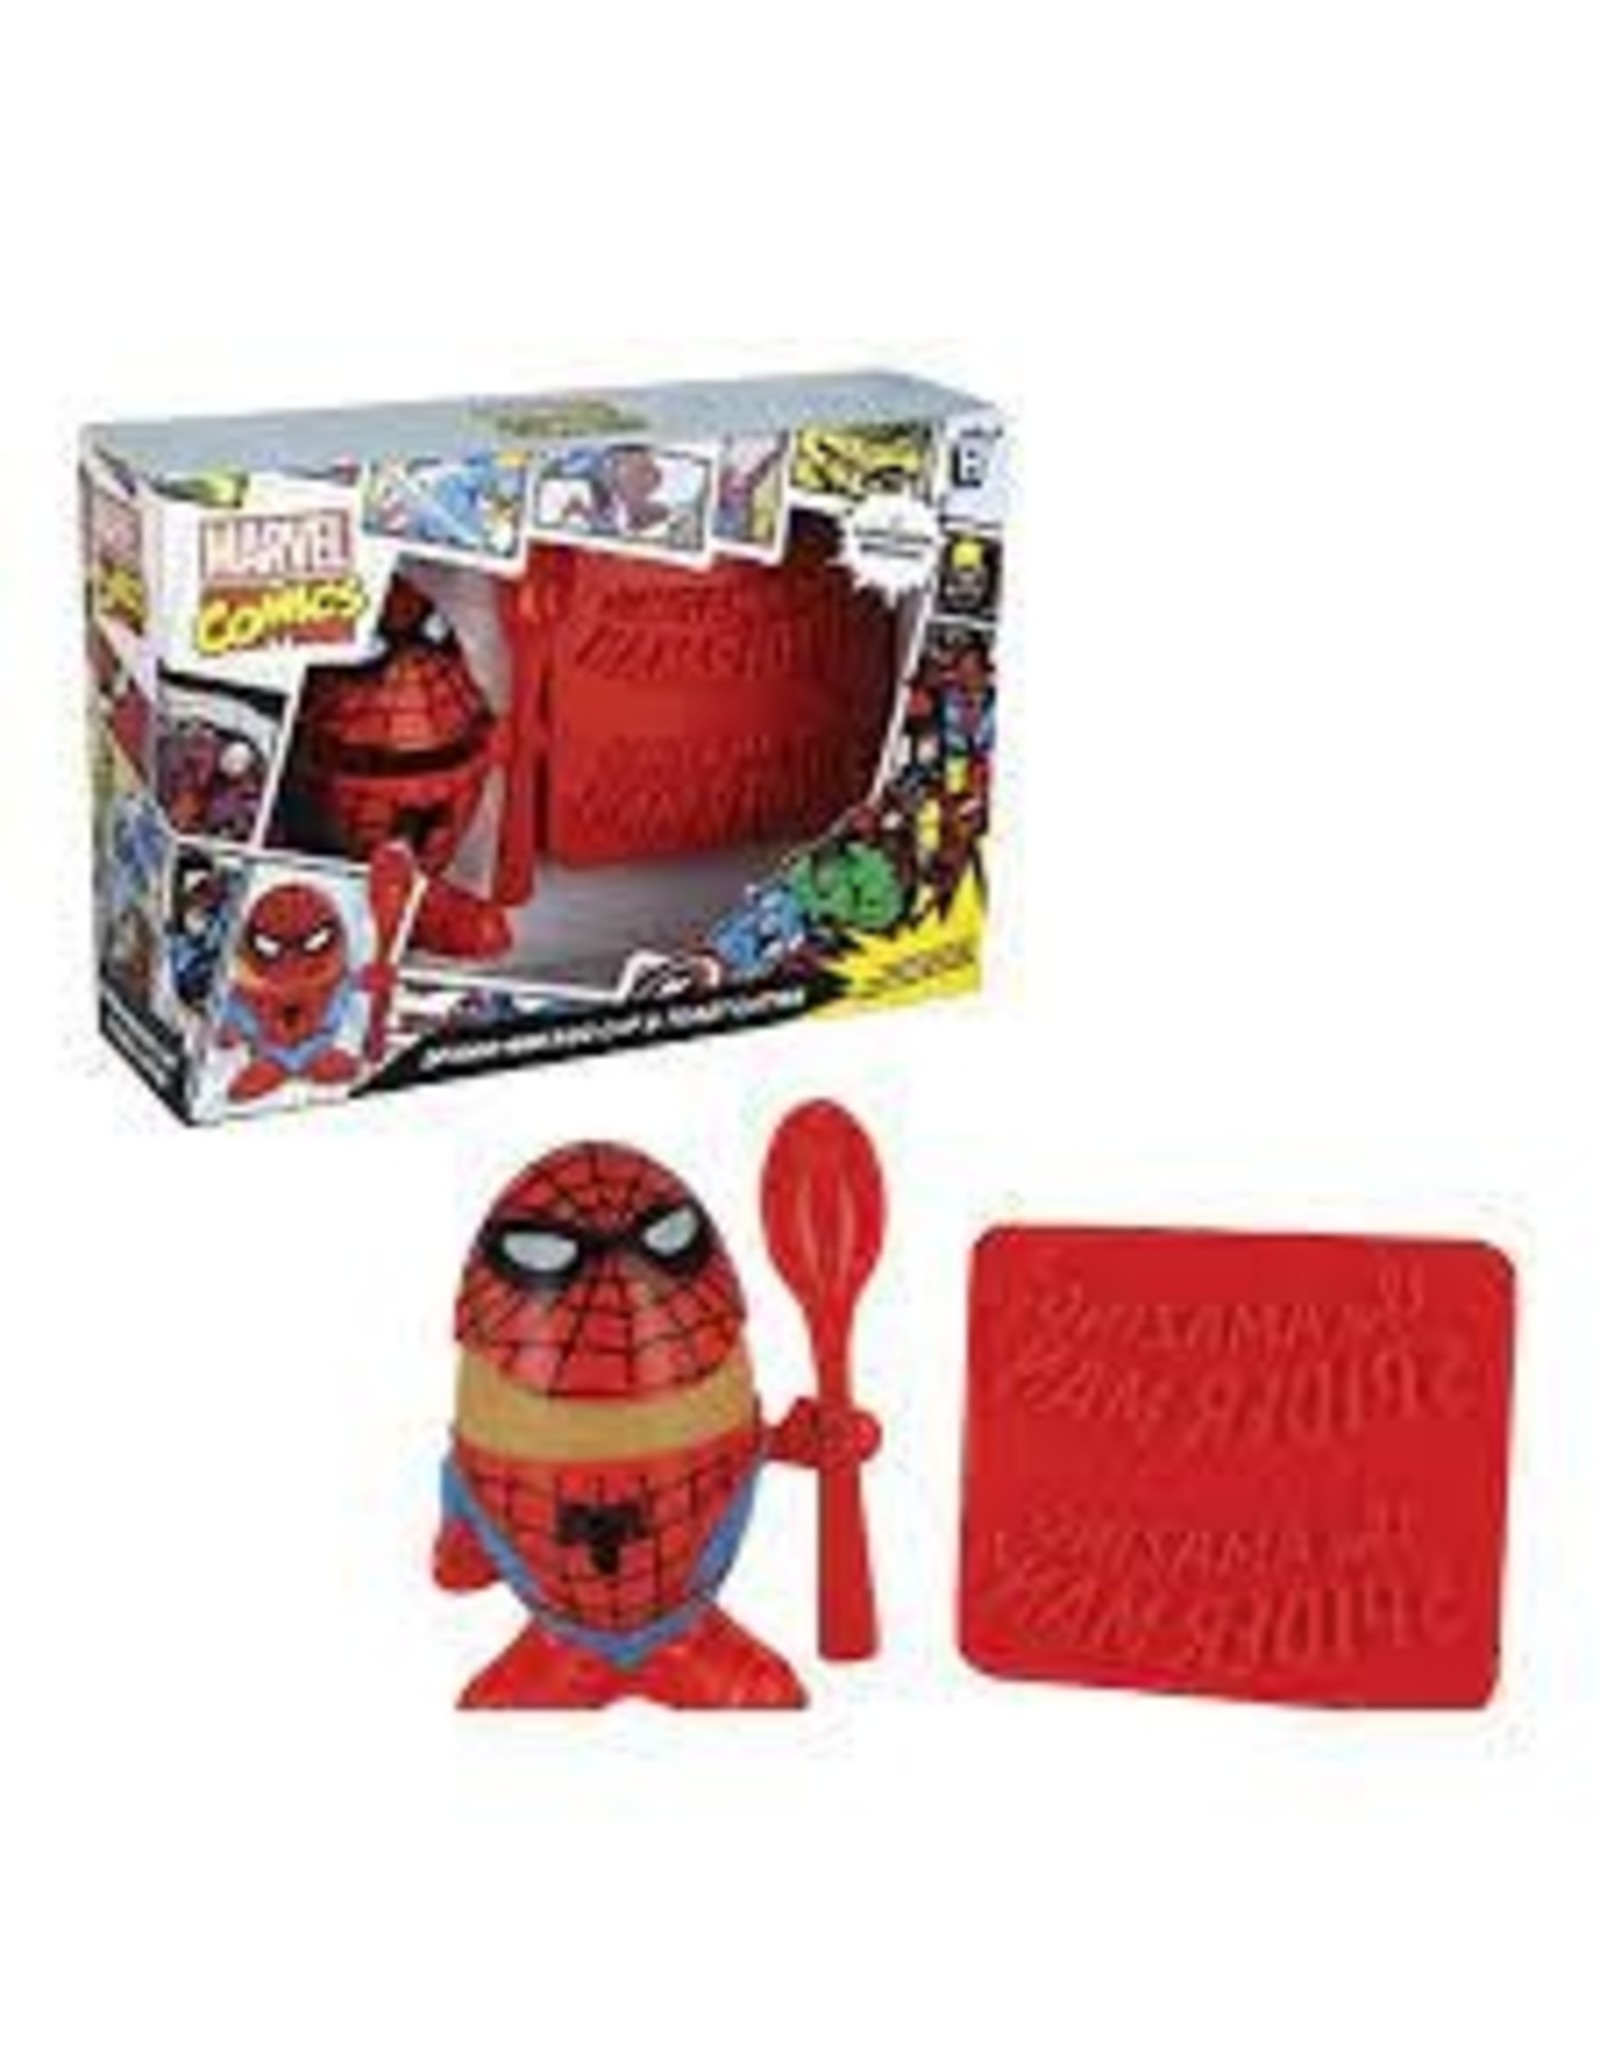 MARVEL - Spiderman Egg Cup and Toast Cutter